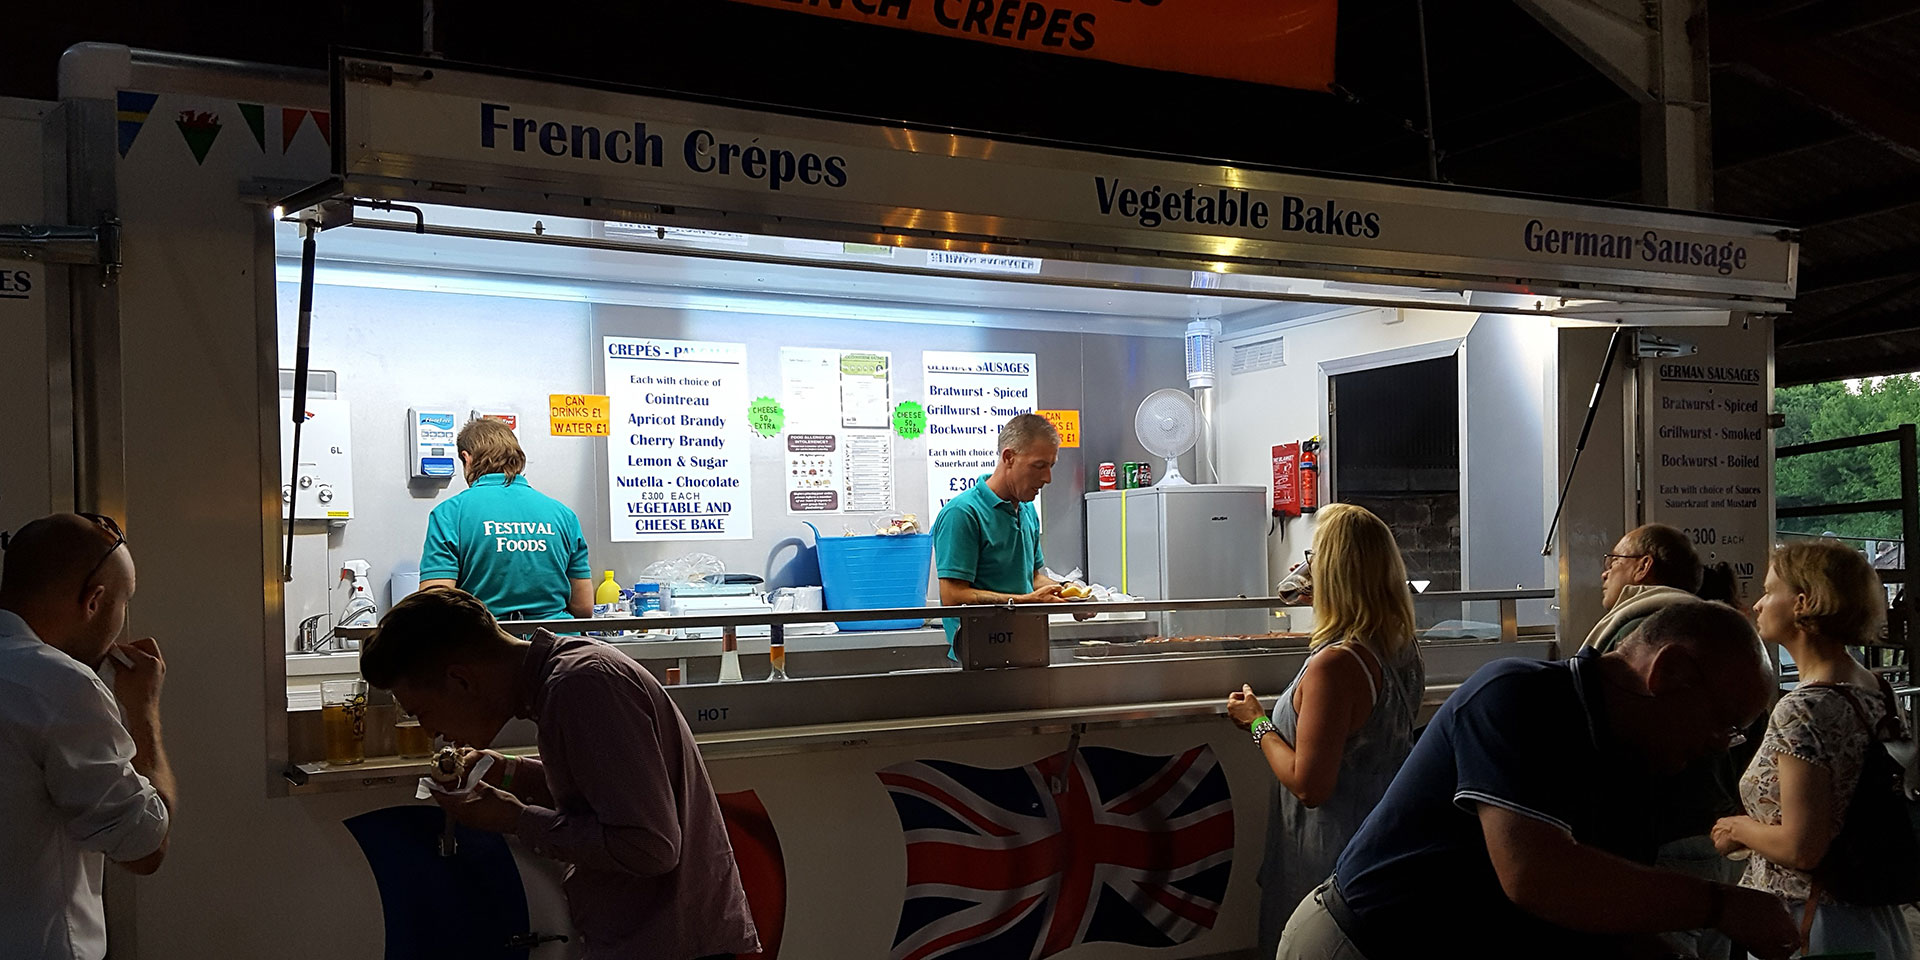 French Crepes and German Sausage Stall at Kent Beer Festival